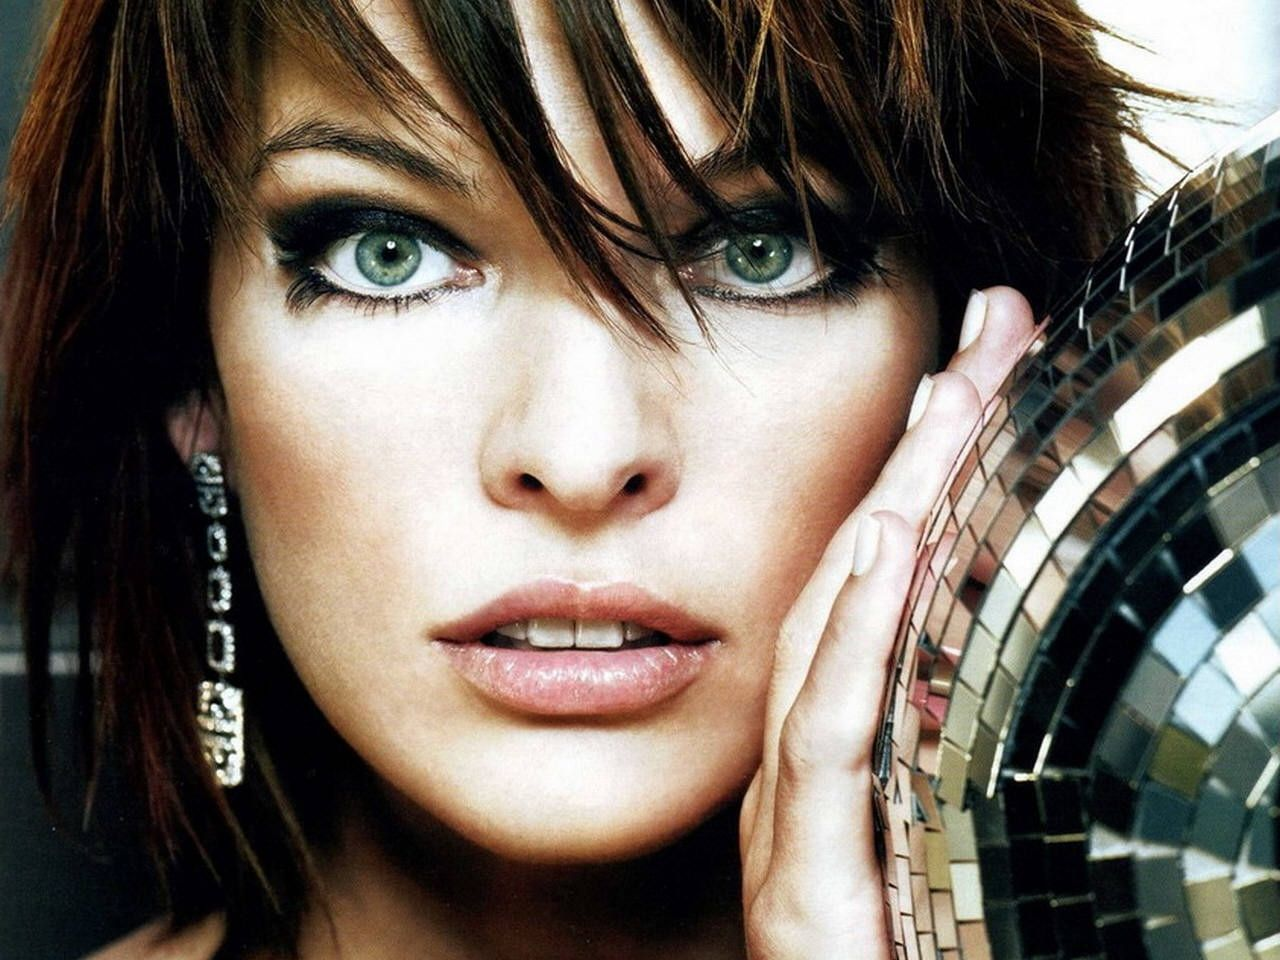 Milla Jovovich Wonderful Eyes - Milla Jovovich Wonderful Eyes